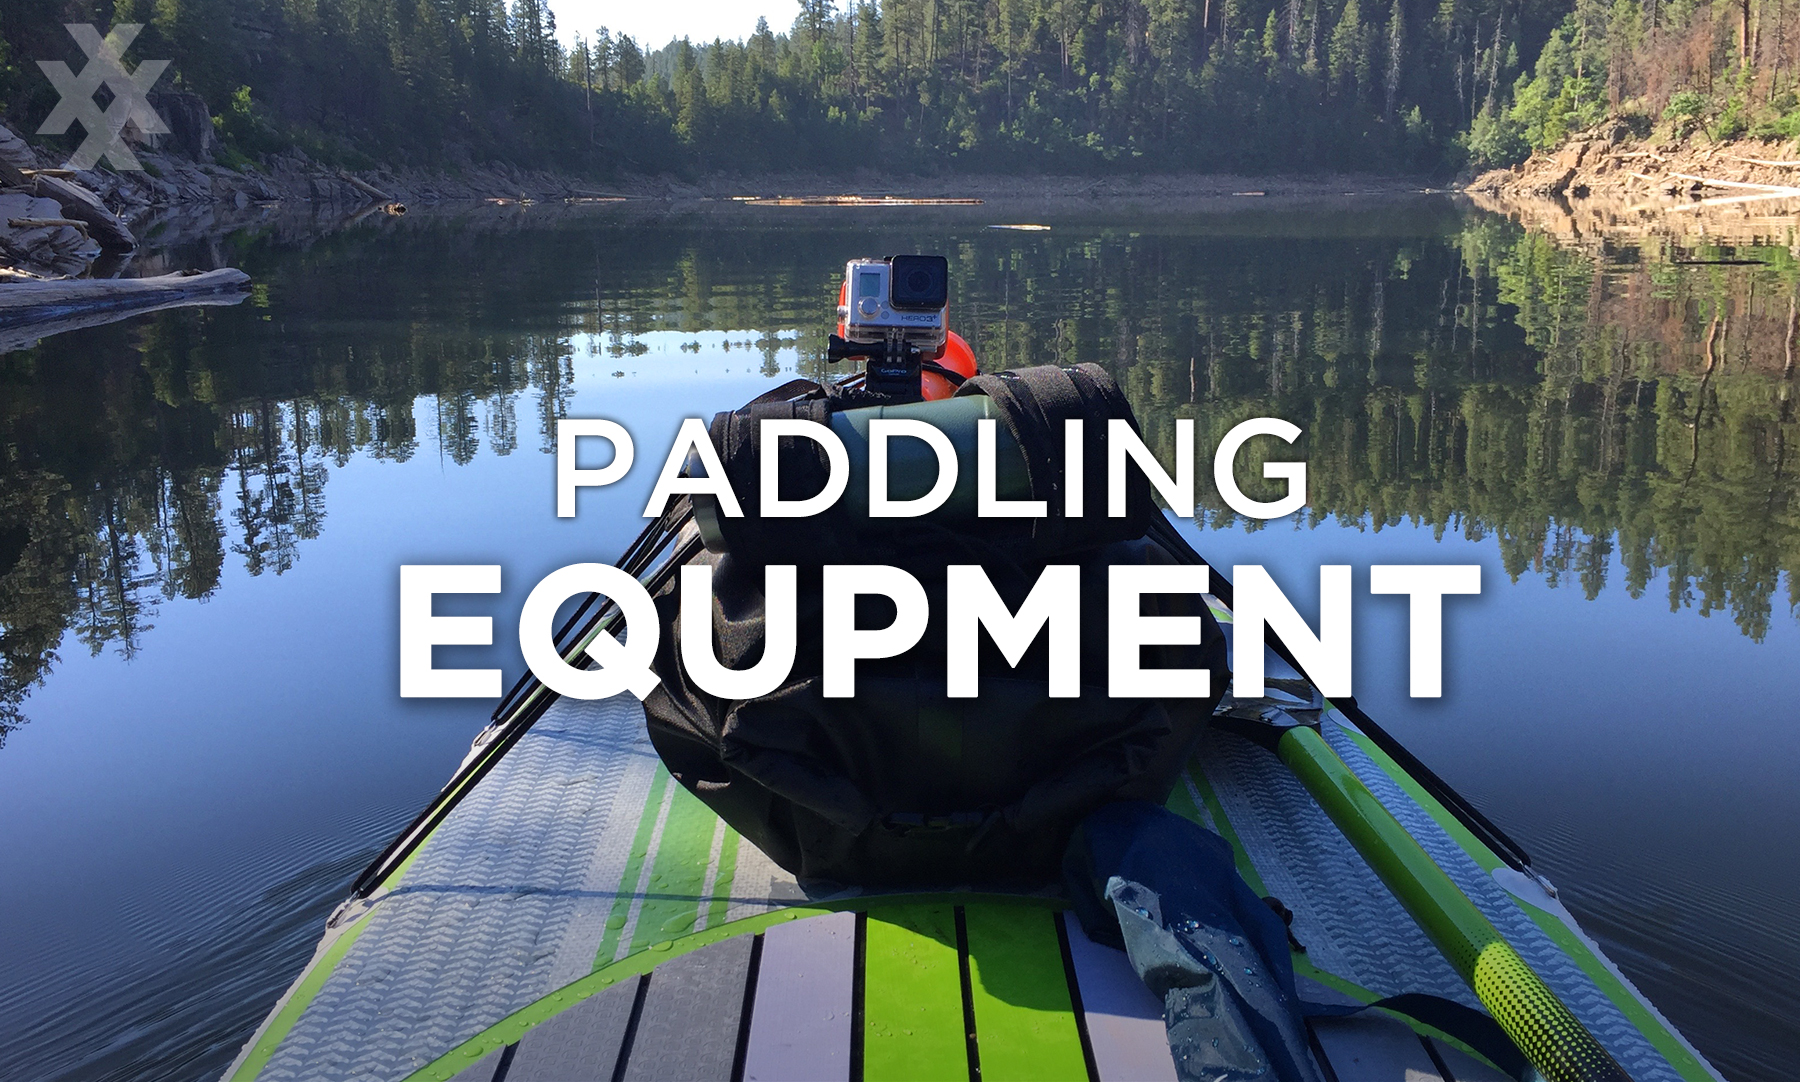 4XPEDITION Paddling Equipment